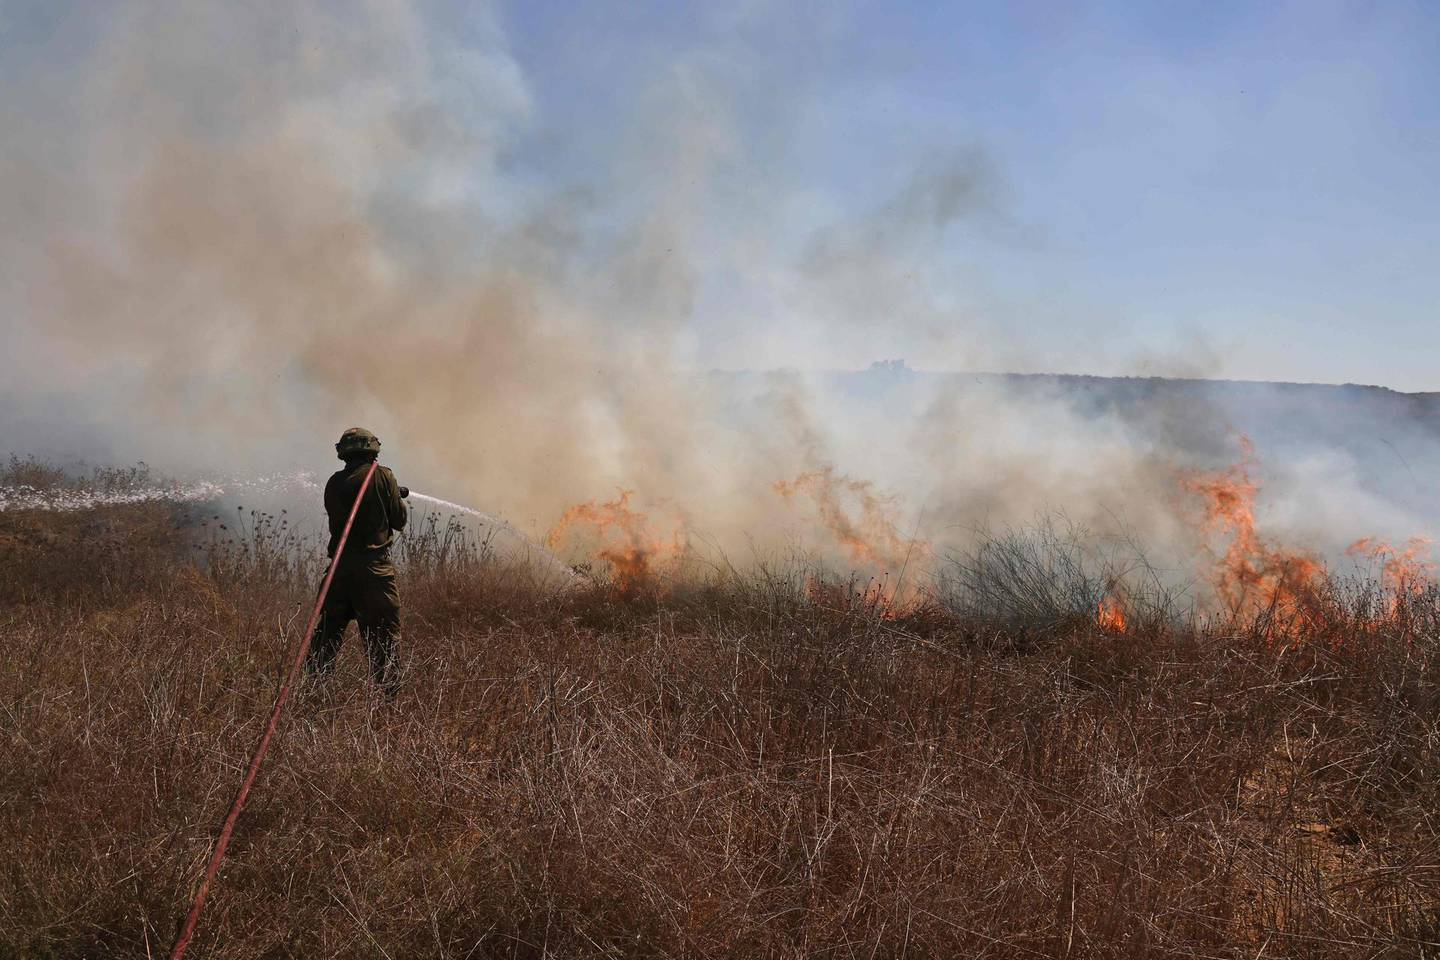 An Israeli soldier extinguishes a fire in a field close to the southern kibbutz of Nir Am near the border with the Gaza Strip on August 25, 2020, after it was set off by incendiary balloons launched from the Palestinian enclave. / AFP / menahem kahana